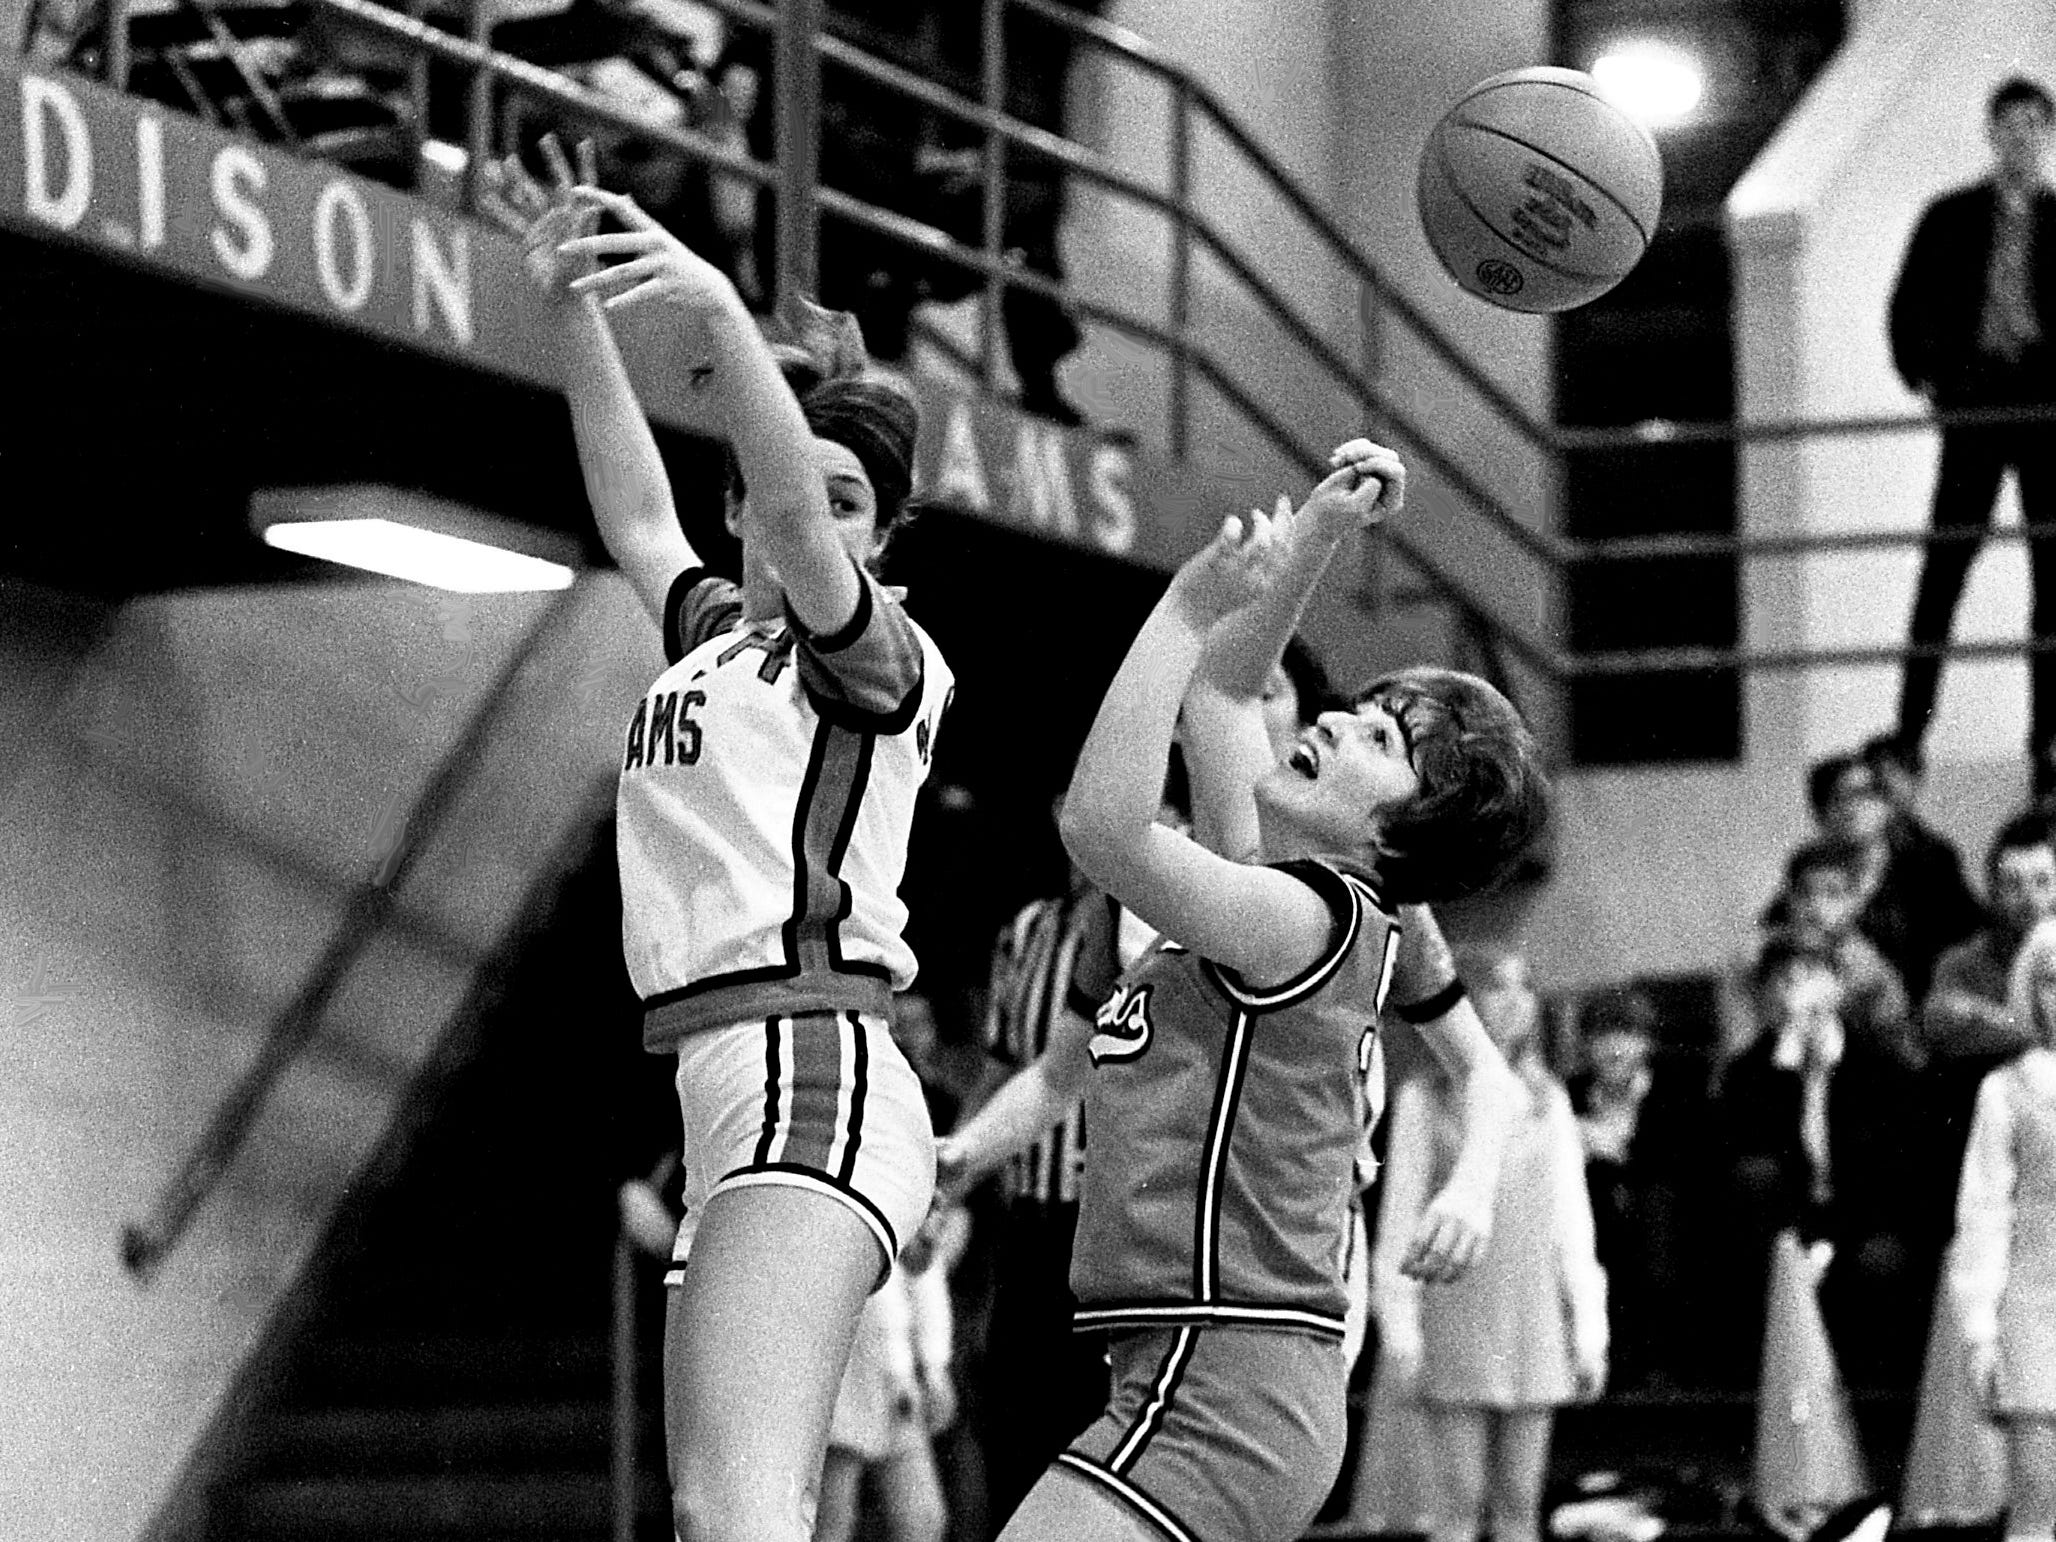 Madison High's Sheila Grant, left, and Stratford High guard Kathy Hiland watch the rebound get away from them. The Stratford girls seem to be in full control of the NIL and 19th District races after defeating Madison 55-40 on the road for their 11th straight league victory and 13th of the year.